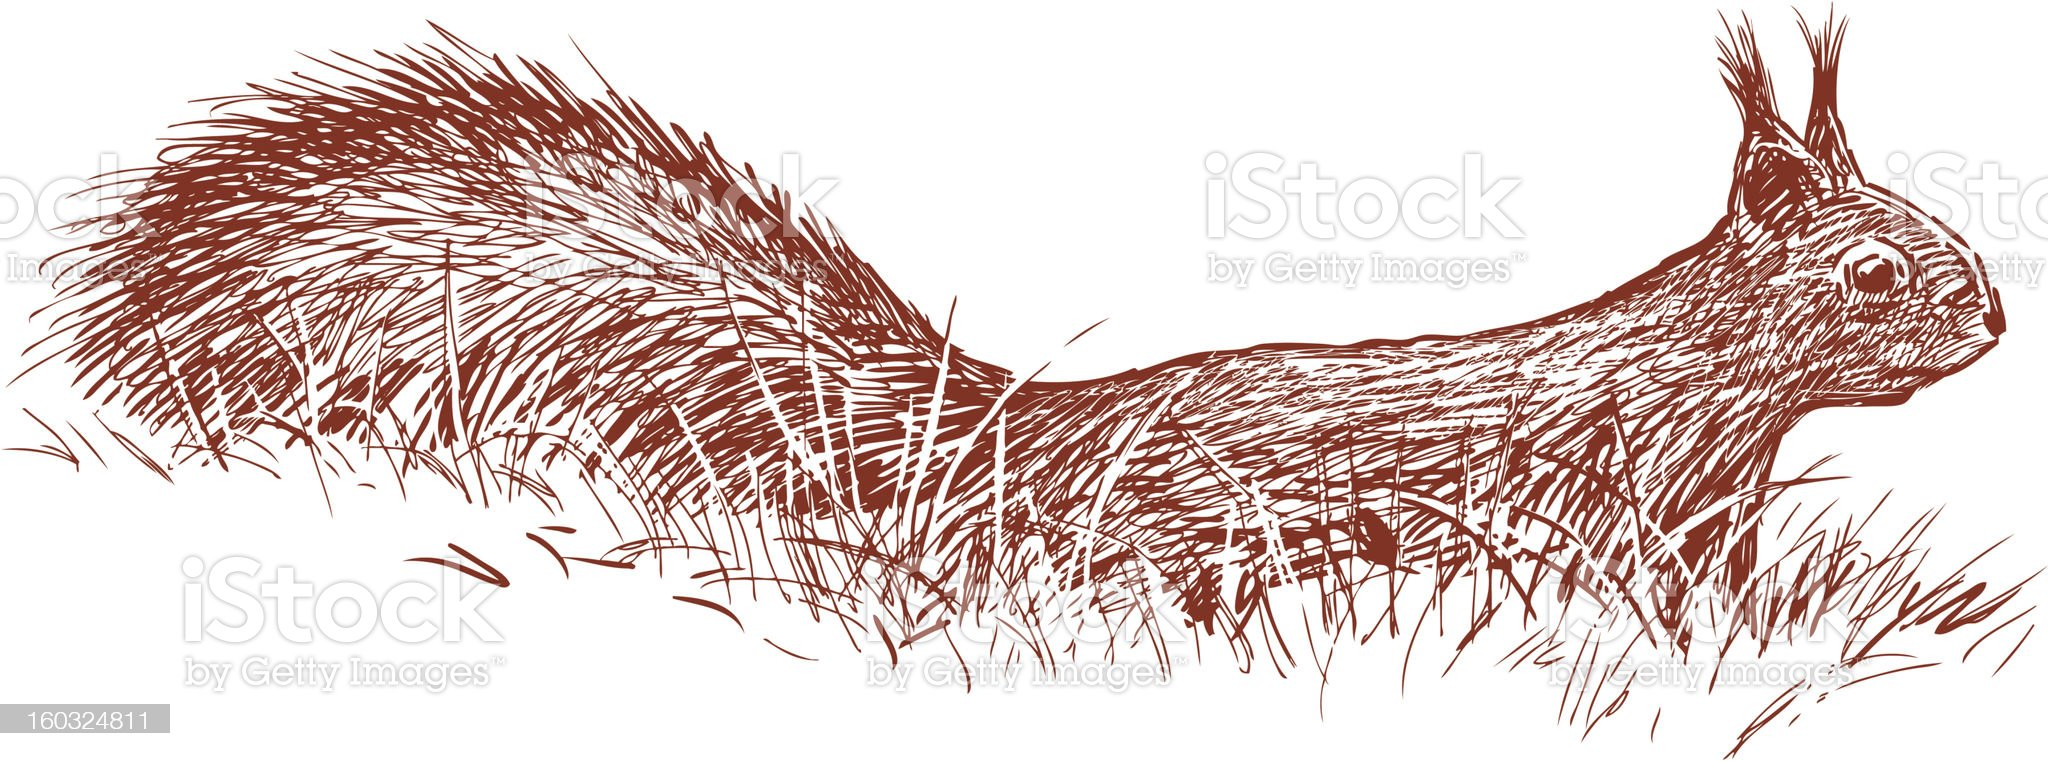 squirrel in the grass royalty-free stock photo